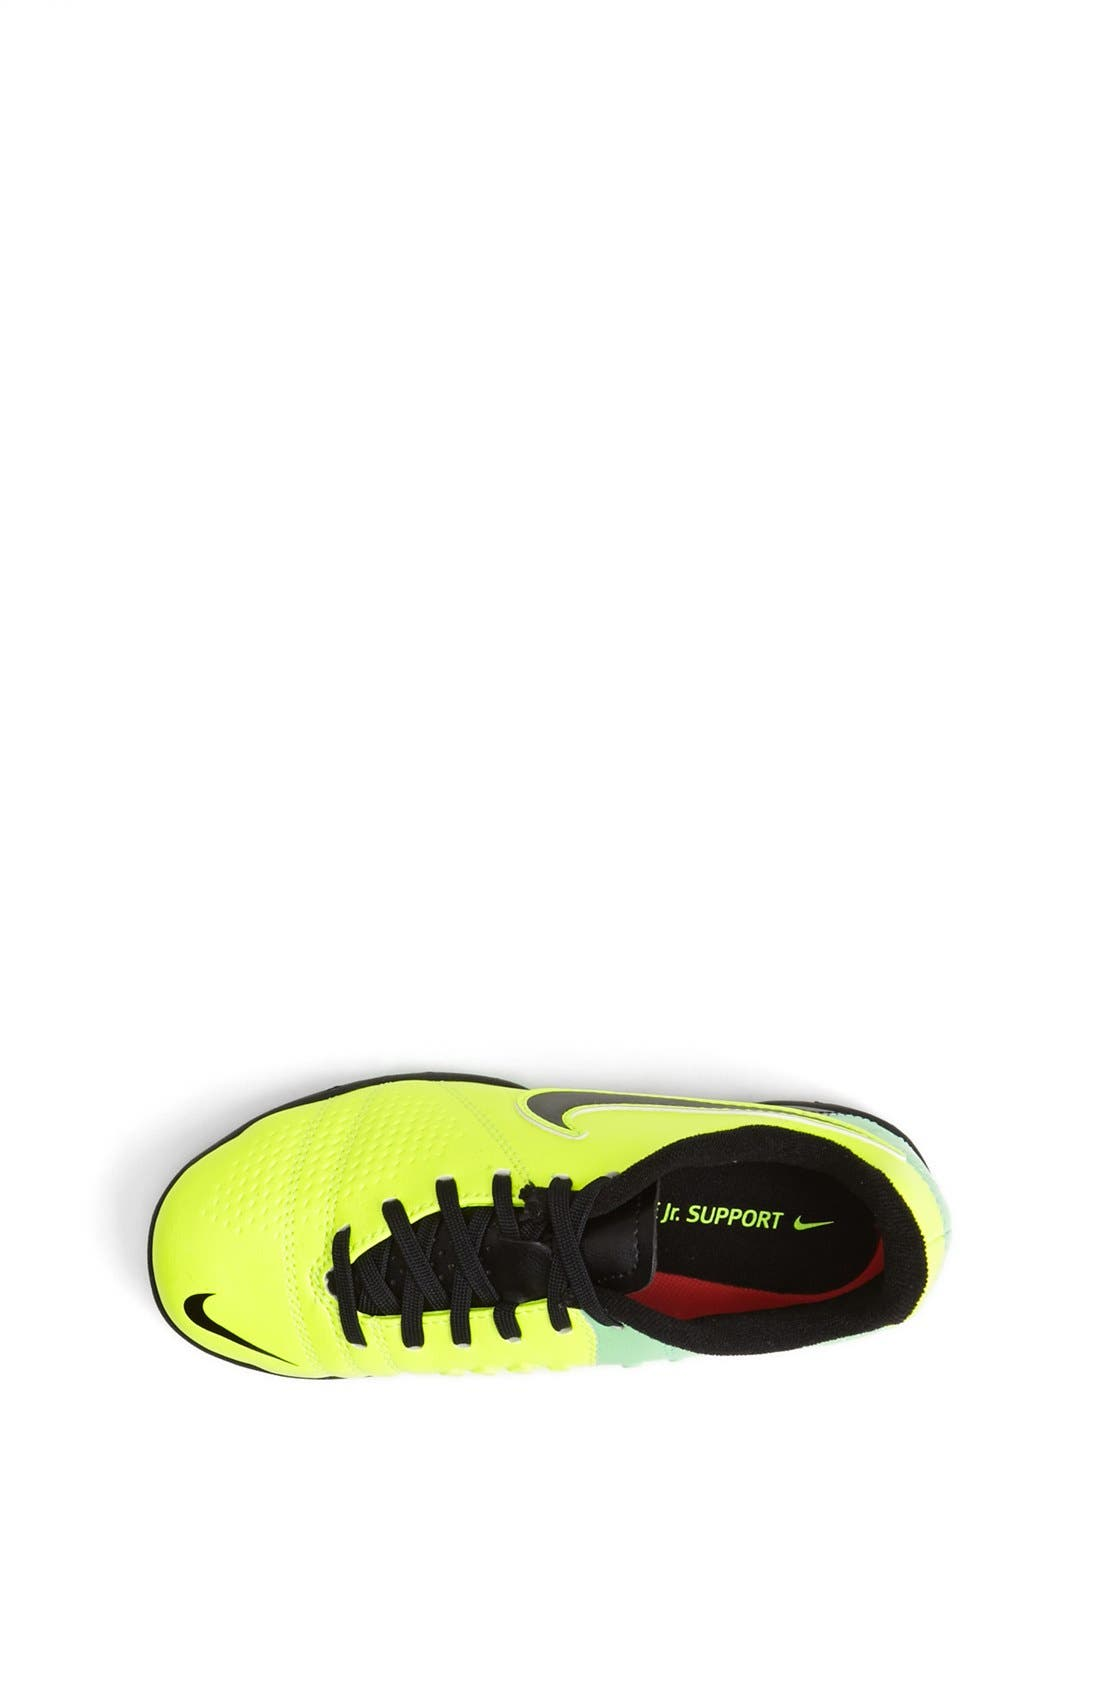 Alternate Image 3  - Nike 'CTR 360 Libretto III' Indoor Soccer Cleat (Toddler, Little Kid & Big Kid)